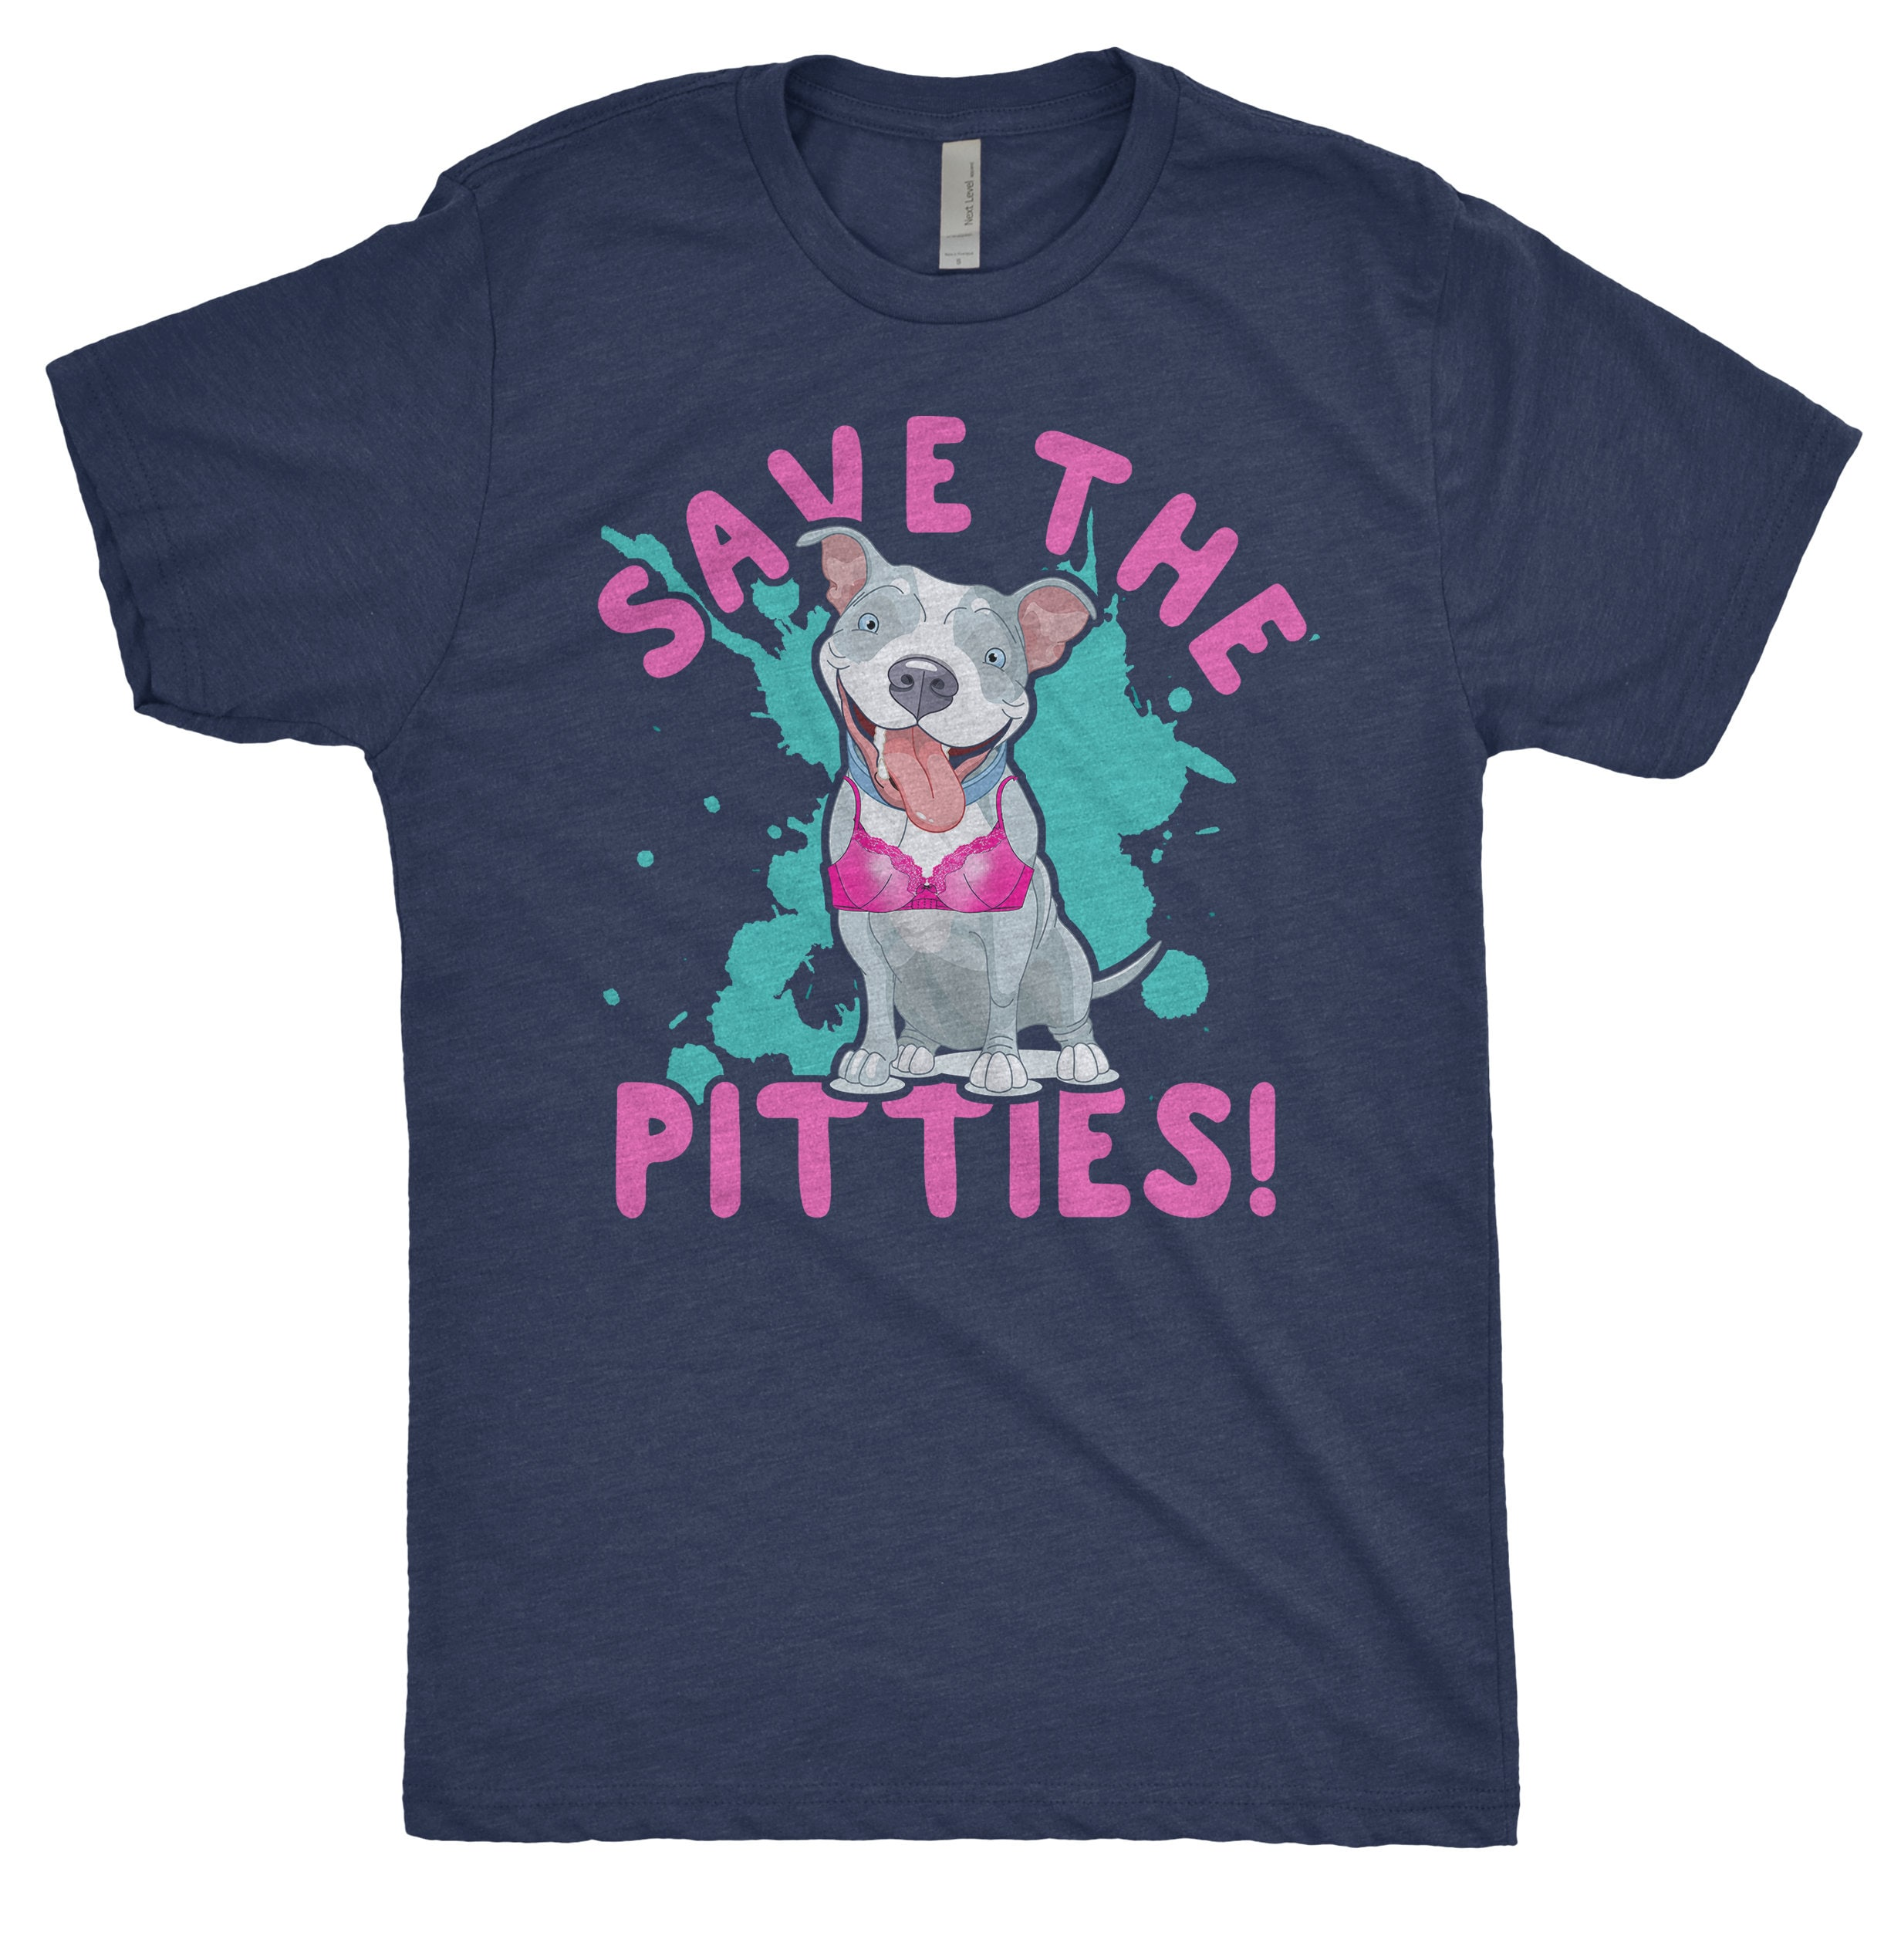 Save The Shirt, Pitties - Save The Tatas, Breast Cancer Survivor Shirt, The Breast Cancer Gifts, Breast Cancer Shirt c2dcfa